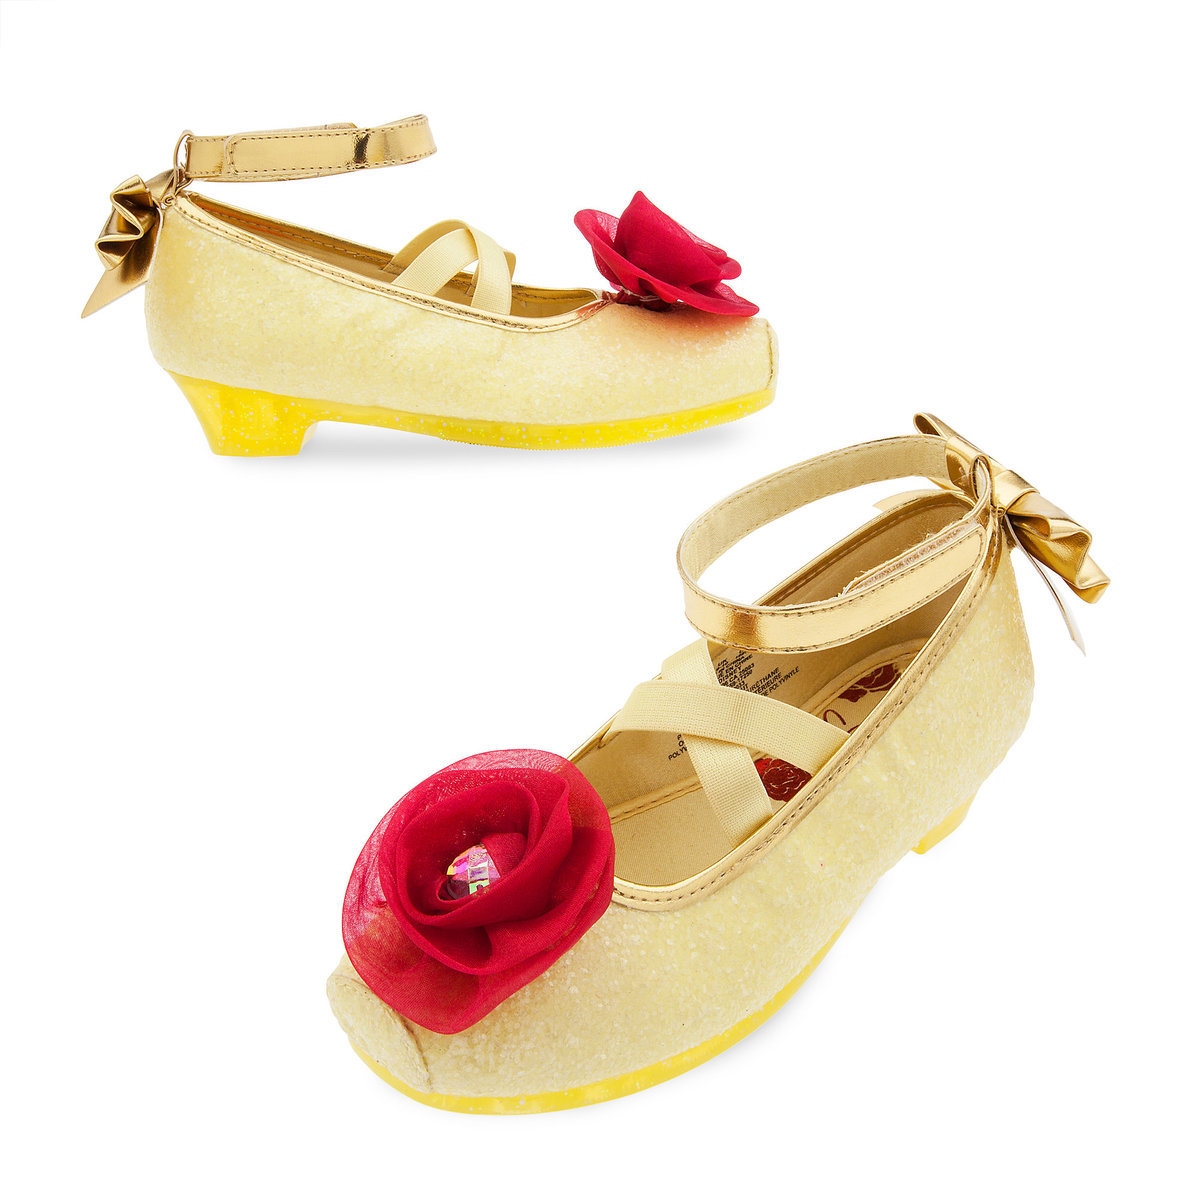 06a99c0c2c31 Product Image of Belle Costume Shoes for Kids   1